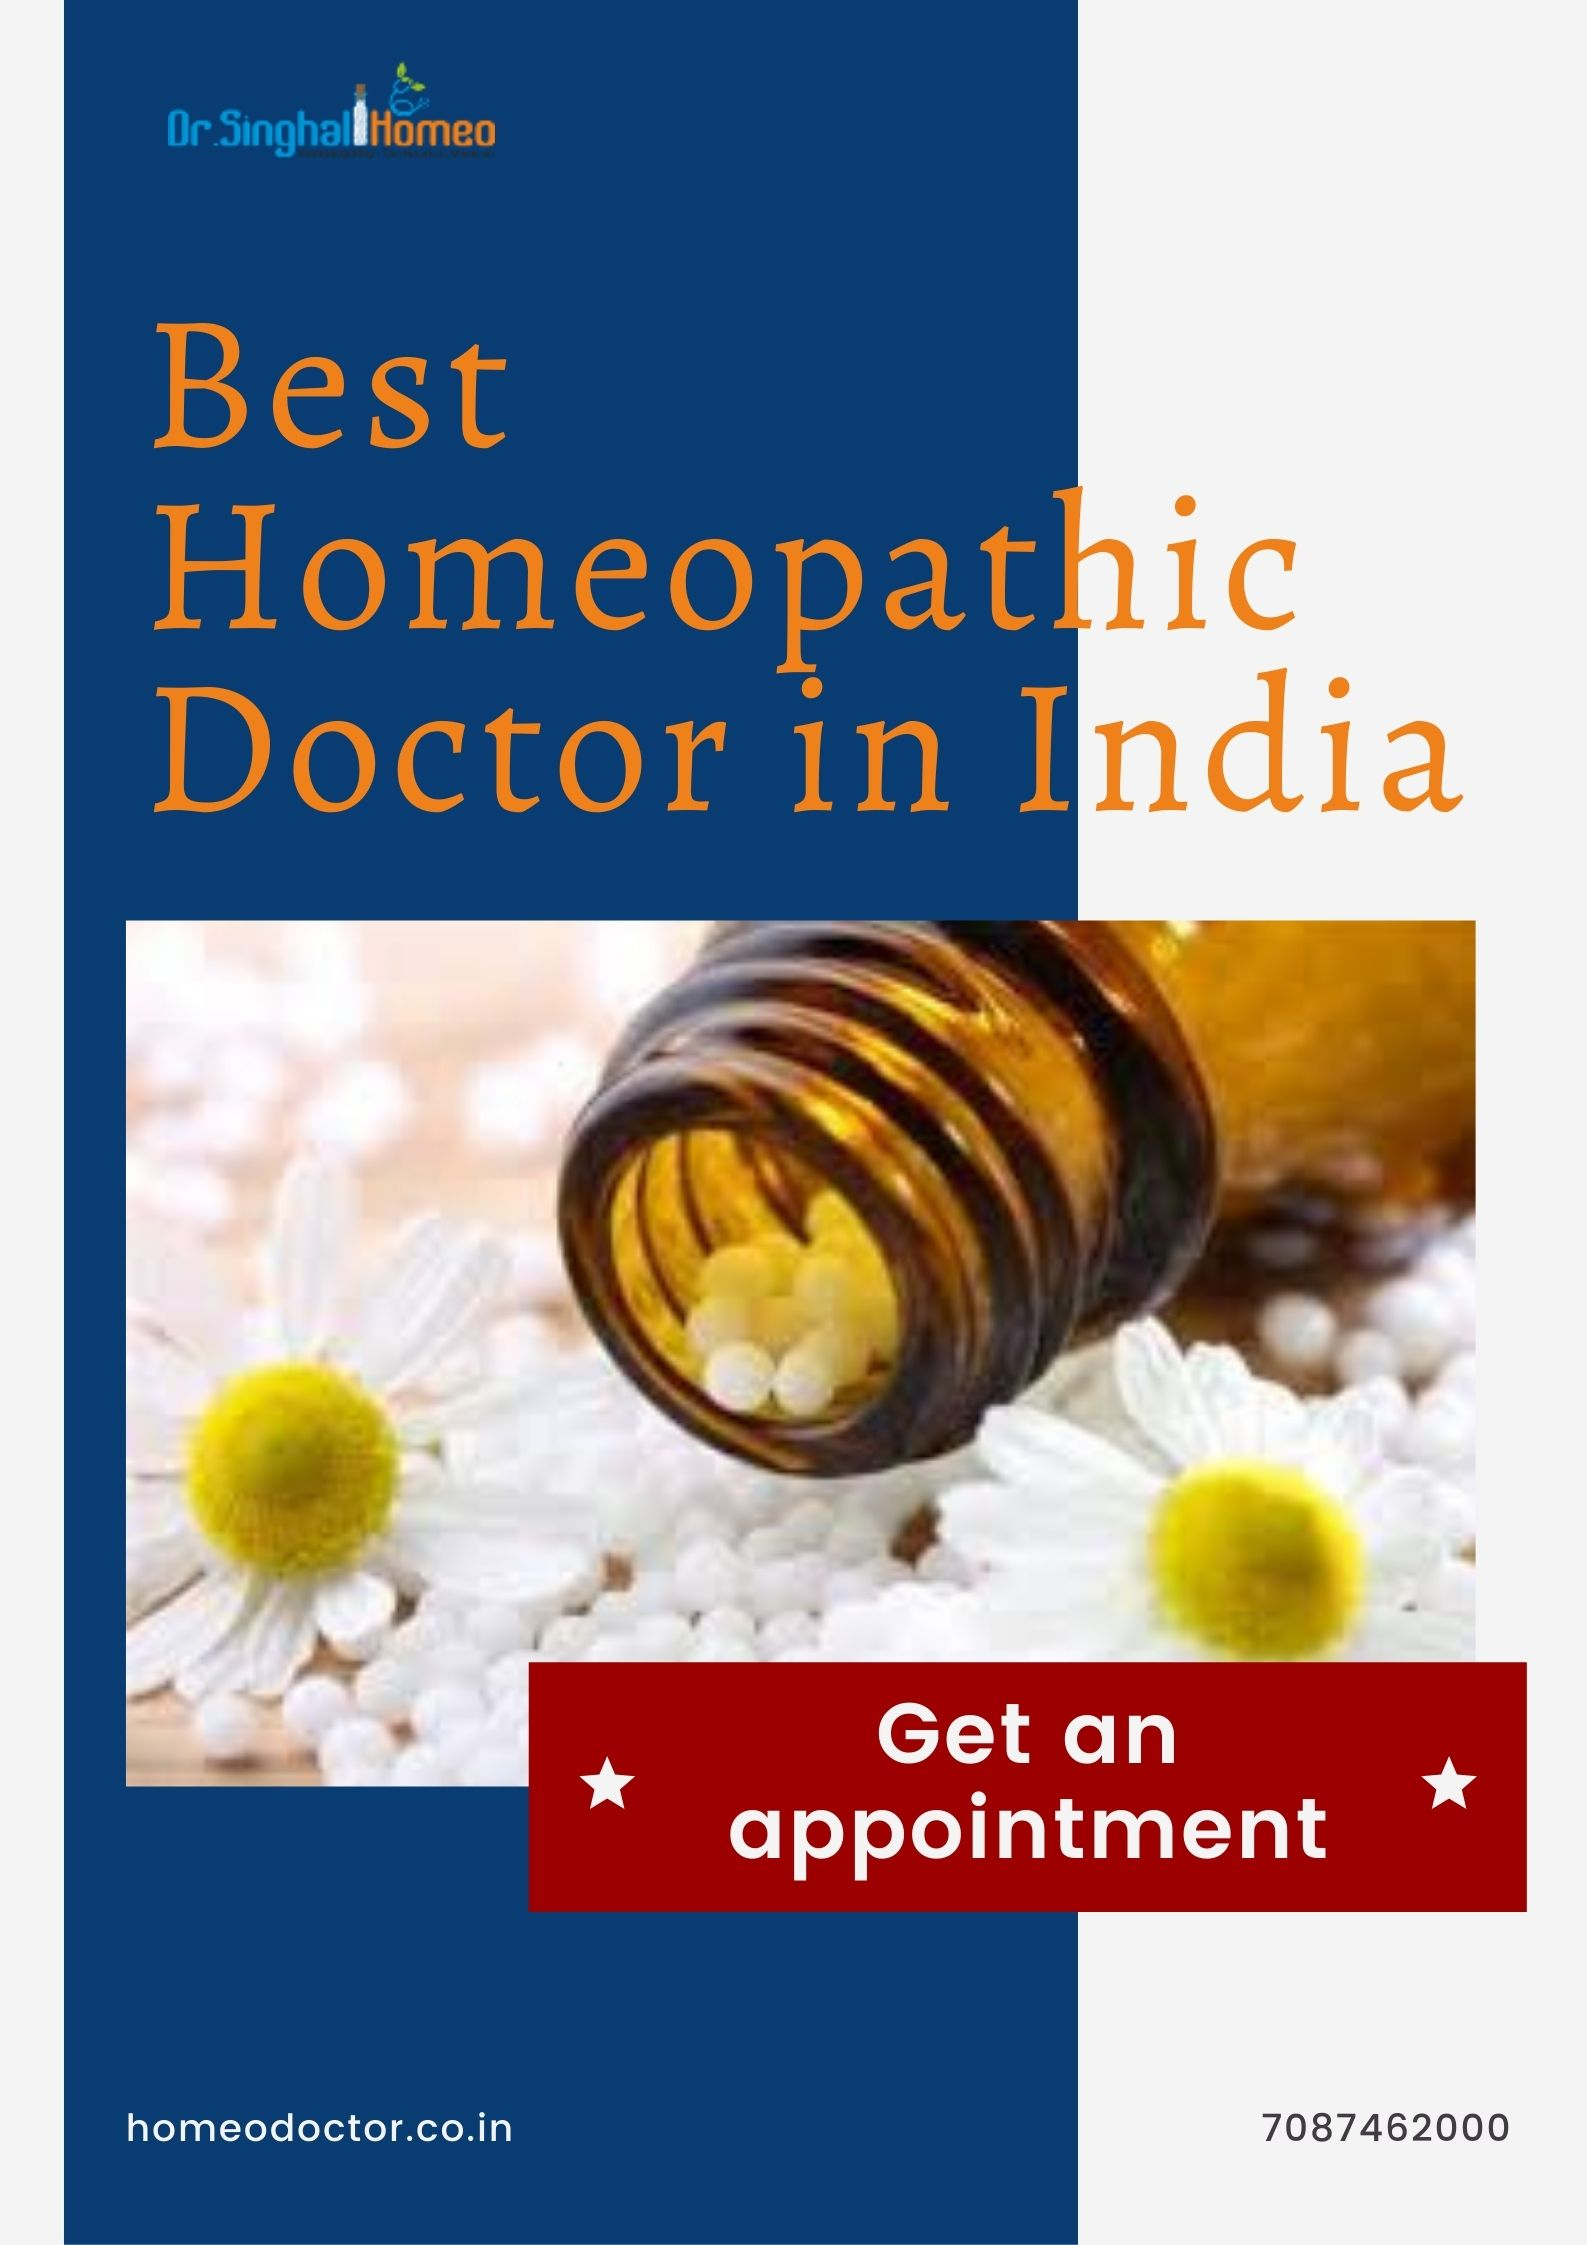 Best Homeopathic Doctor in Mohali, Best Homeopathic Doctor & Treatment in Mohali